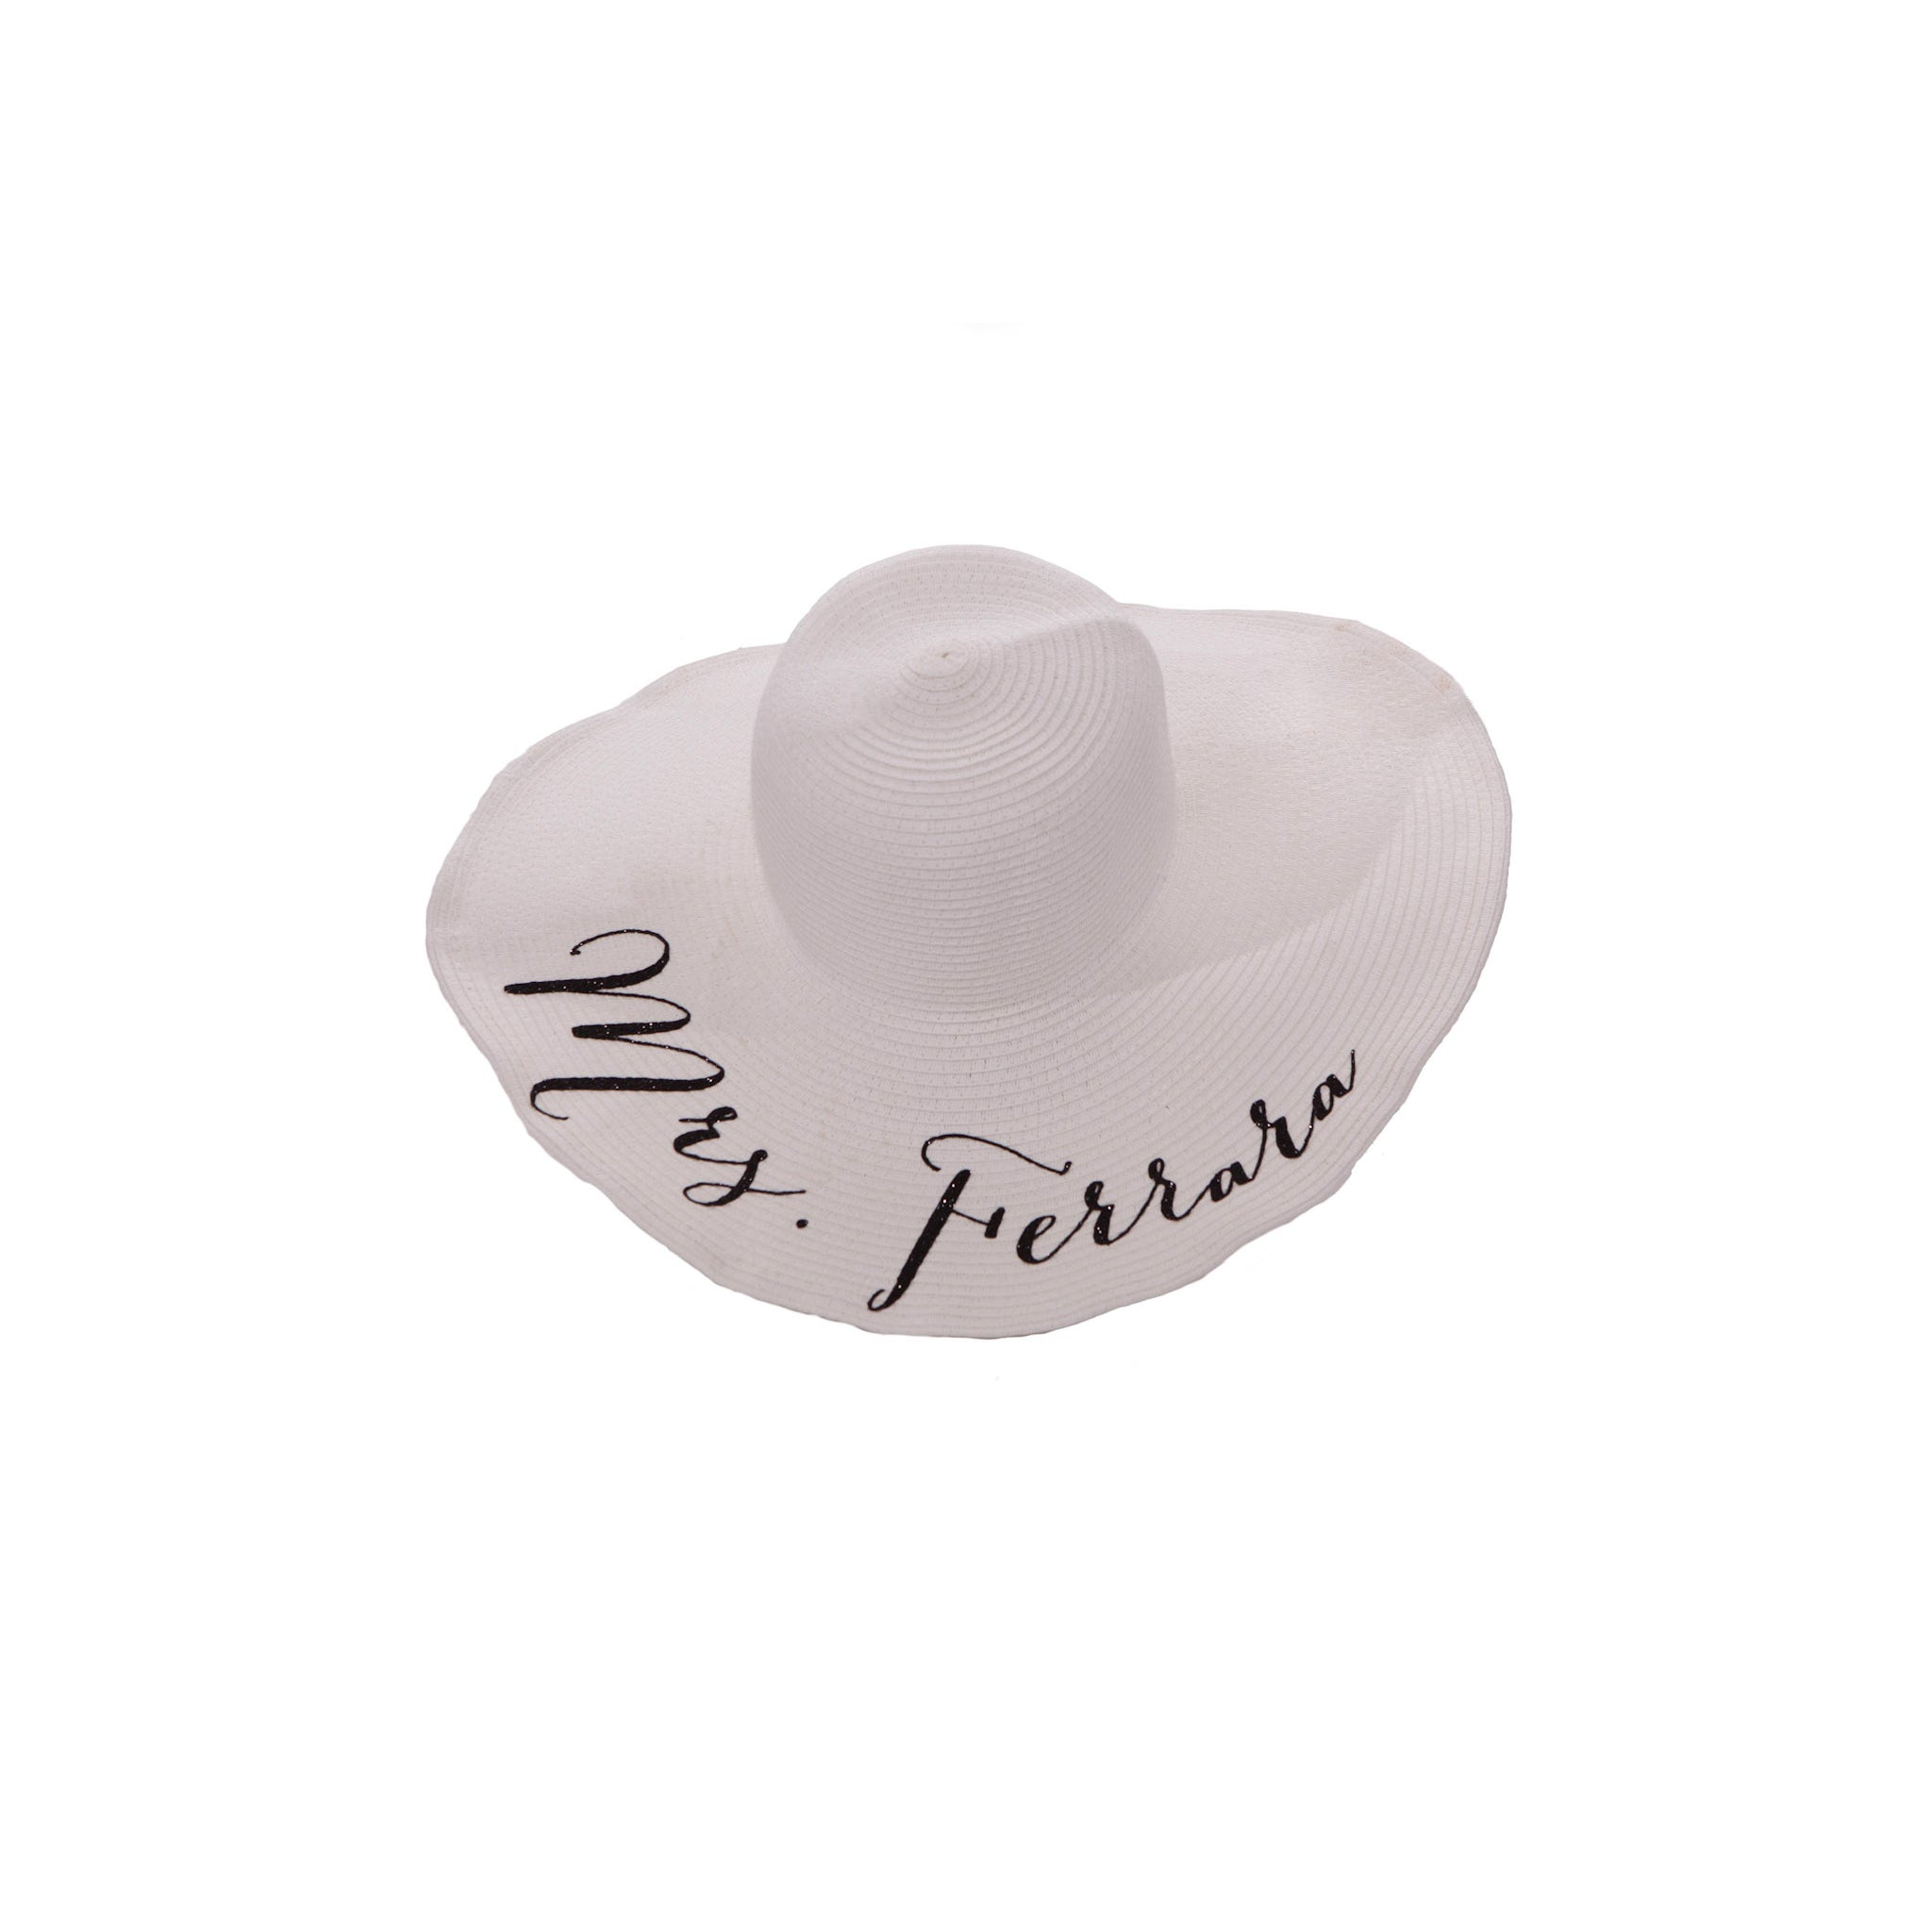 Personalized Floppy Hat - LE EL New York